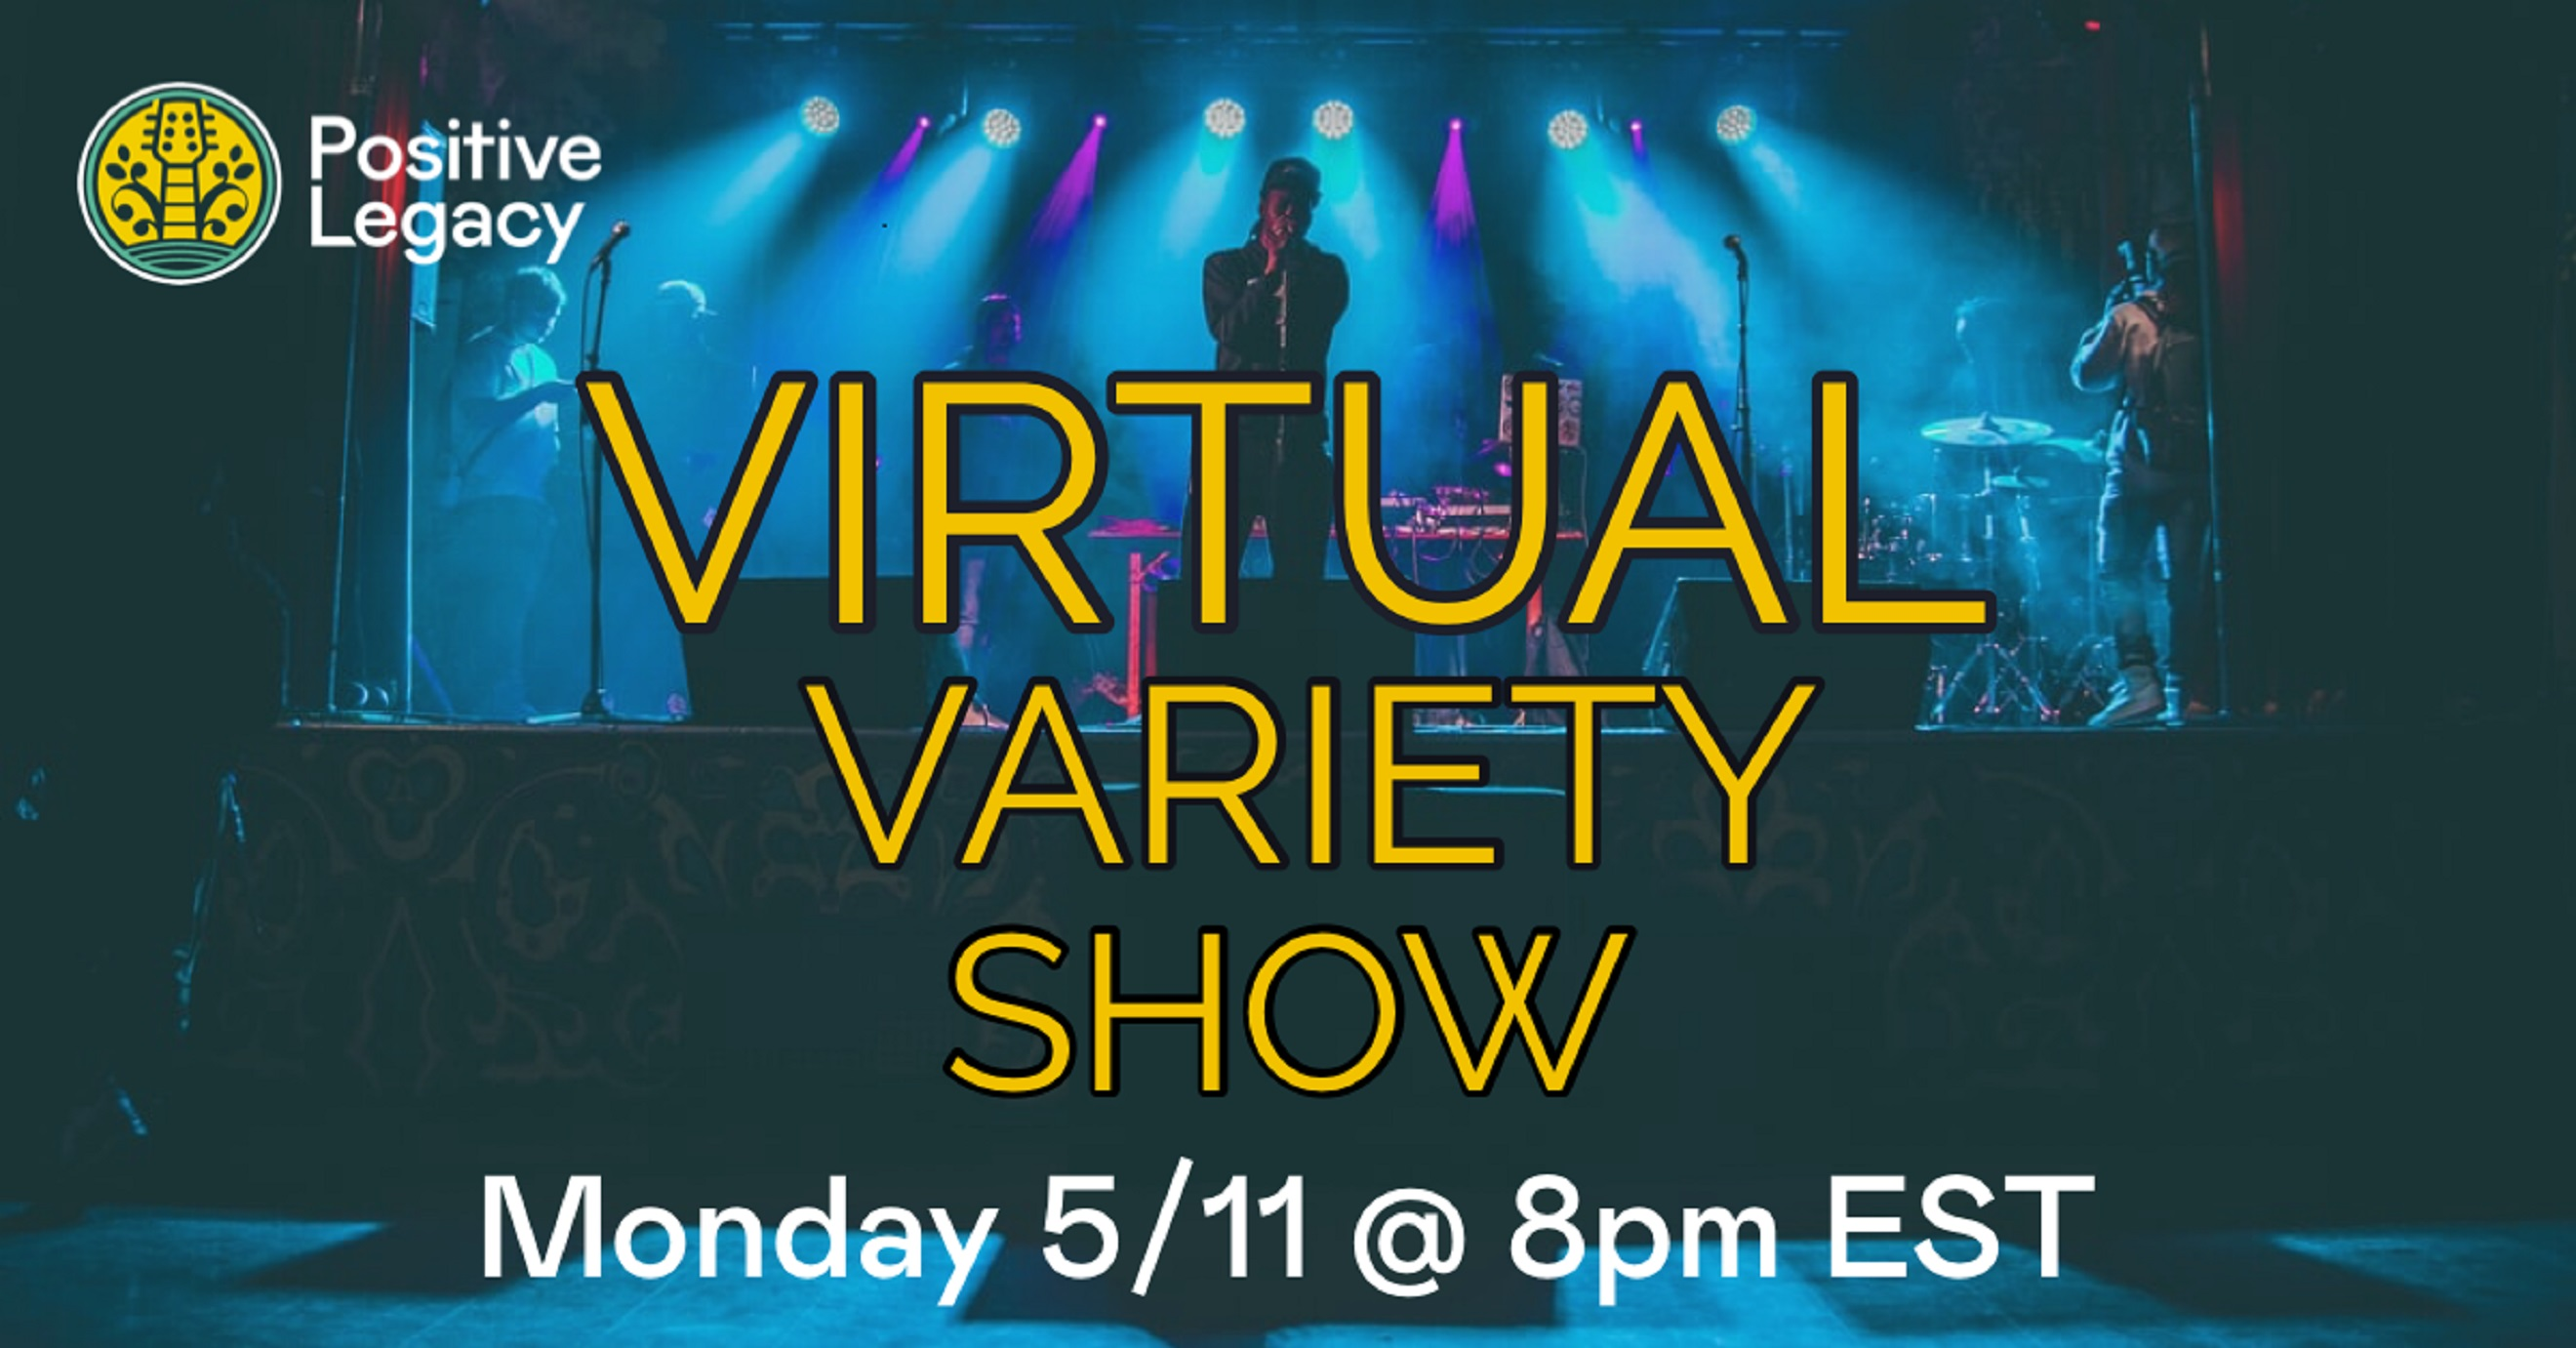 Announcing Positive Legacy Virtual Variety Show // COVID Fundraiser